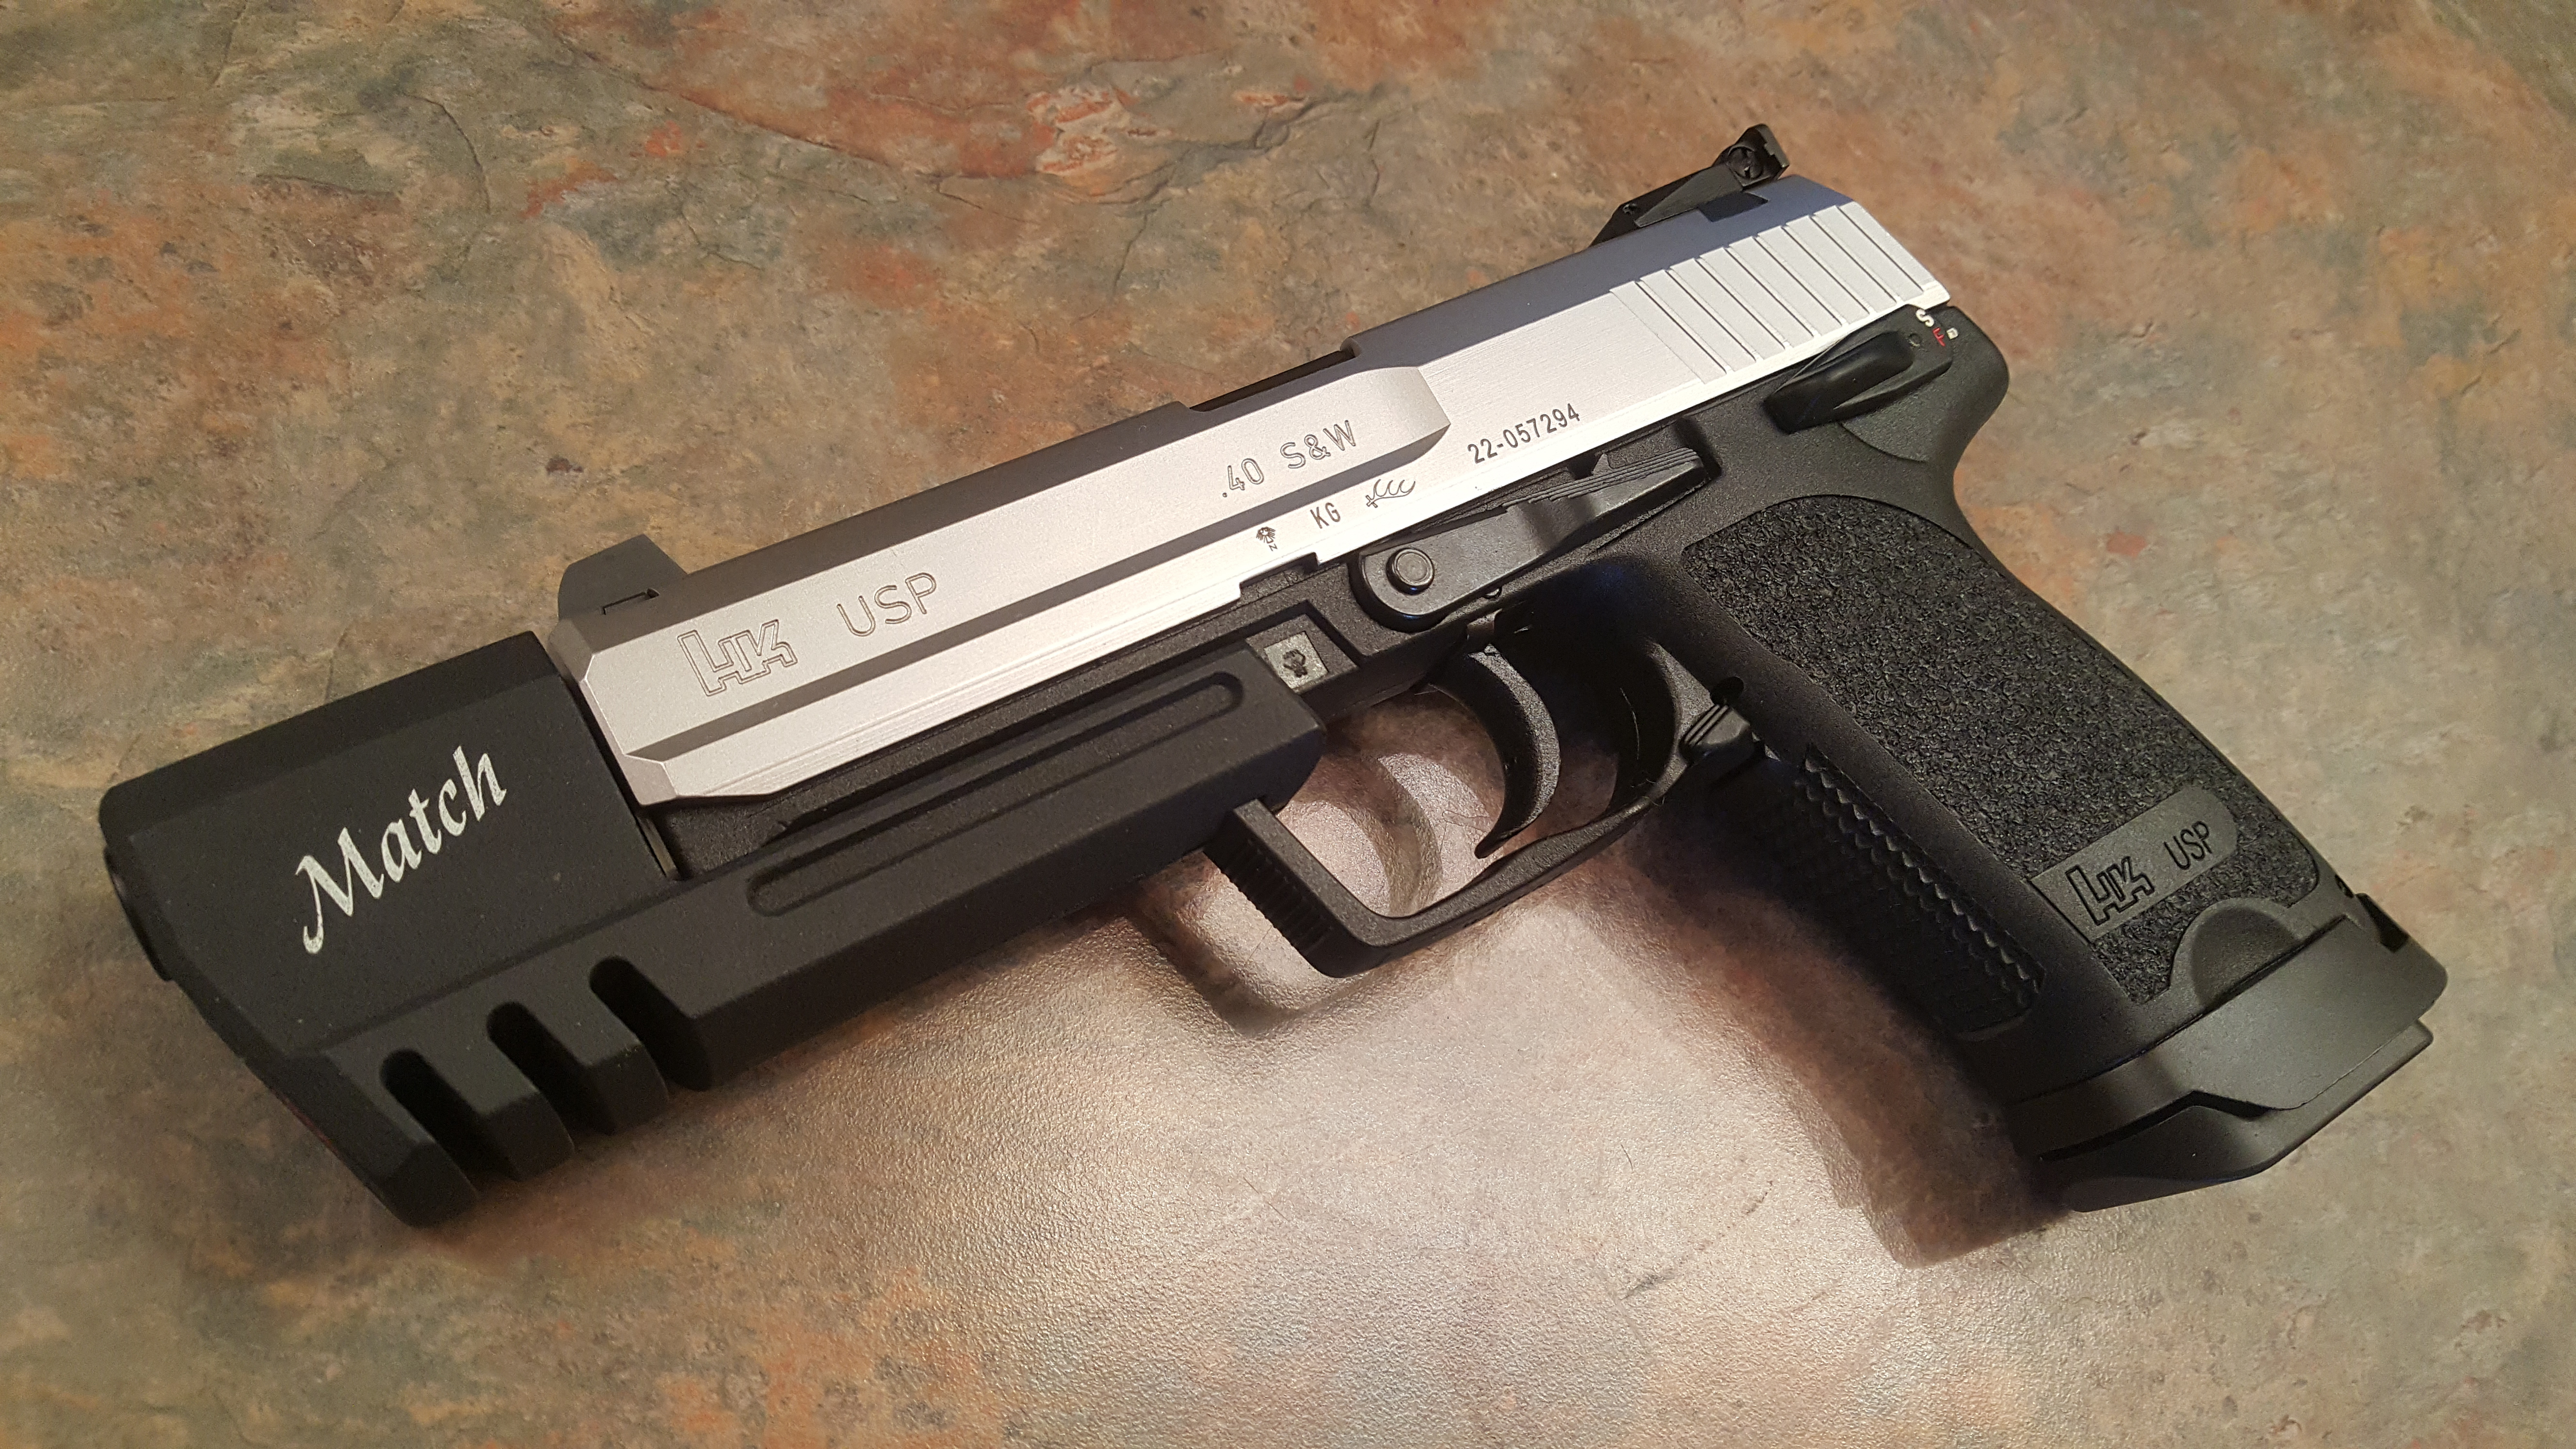 Let's See Your USP's!-20200406_175346.jpg